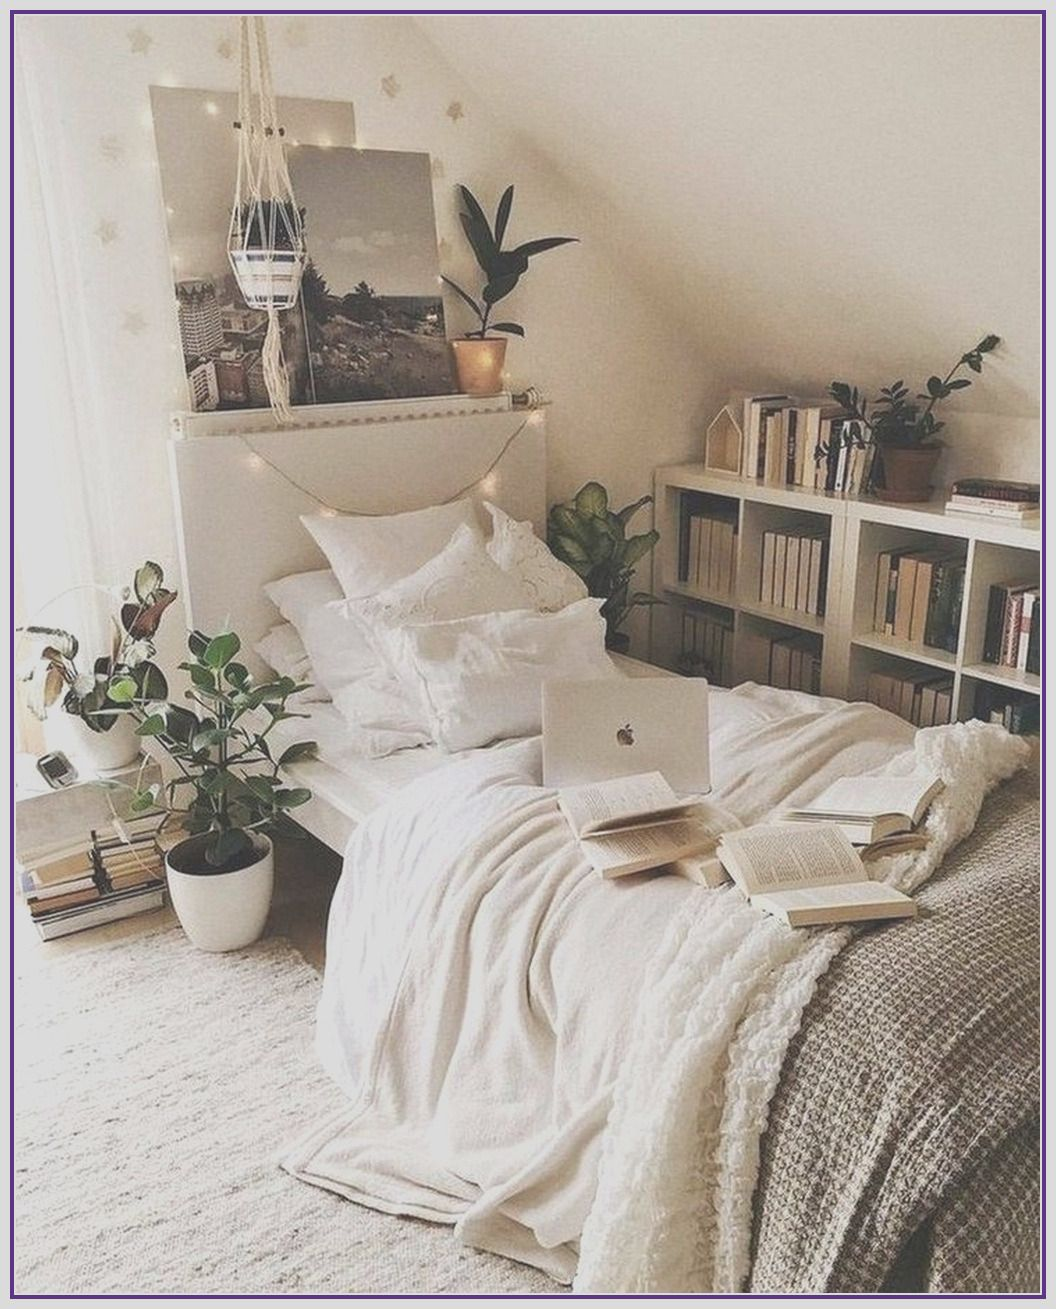 26 Minimalist Bedroom Decoration Ideas That Looks Cool In 2020 Apartment Bedroom Decor Tumblr Bedroom Decor Small Bedroom Diy